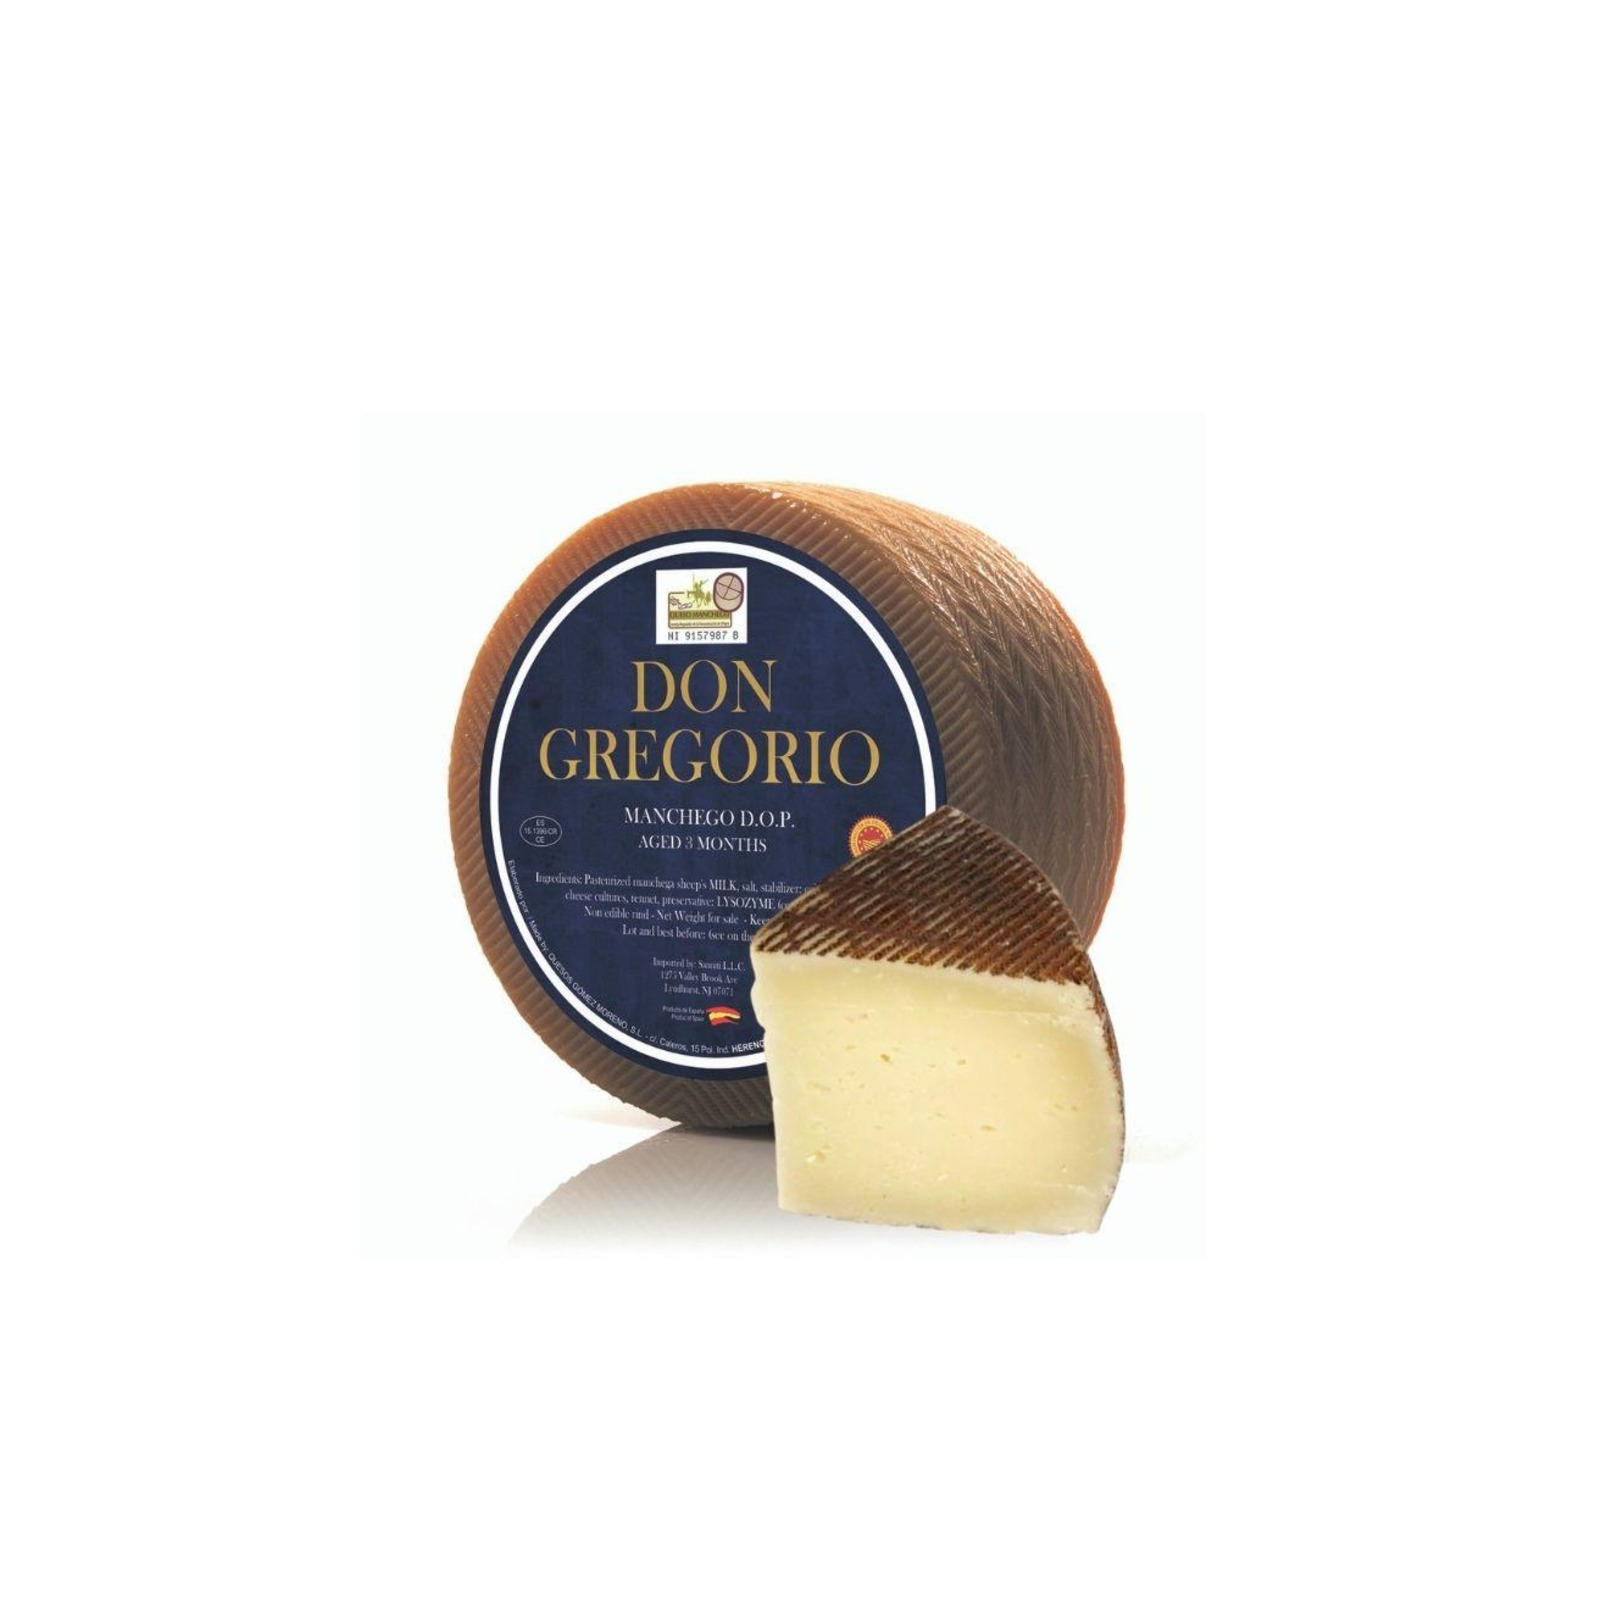 Quesos Gomez Moreno Manchego Semi Curado Pasteurised Spanish Cheese- By TANINOS